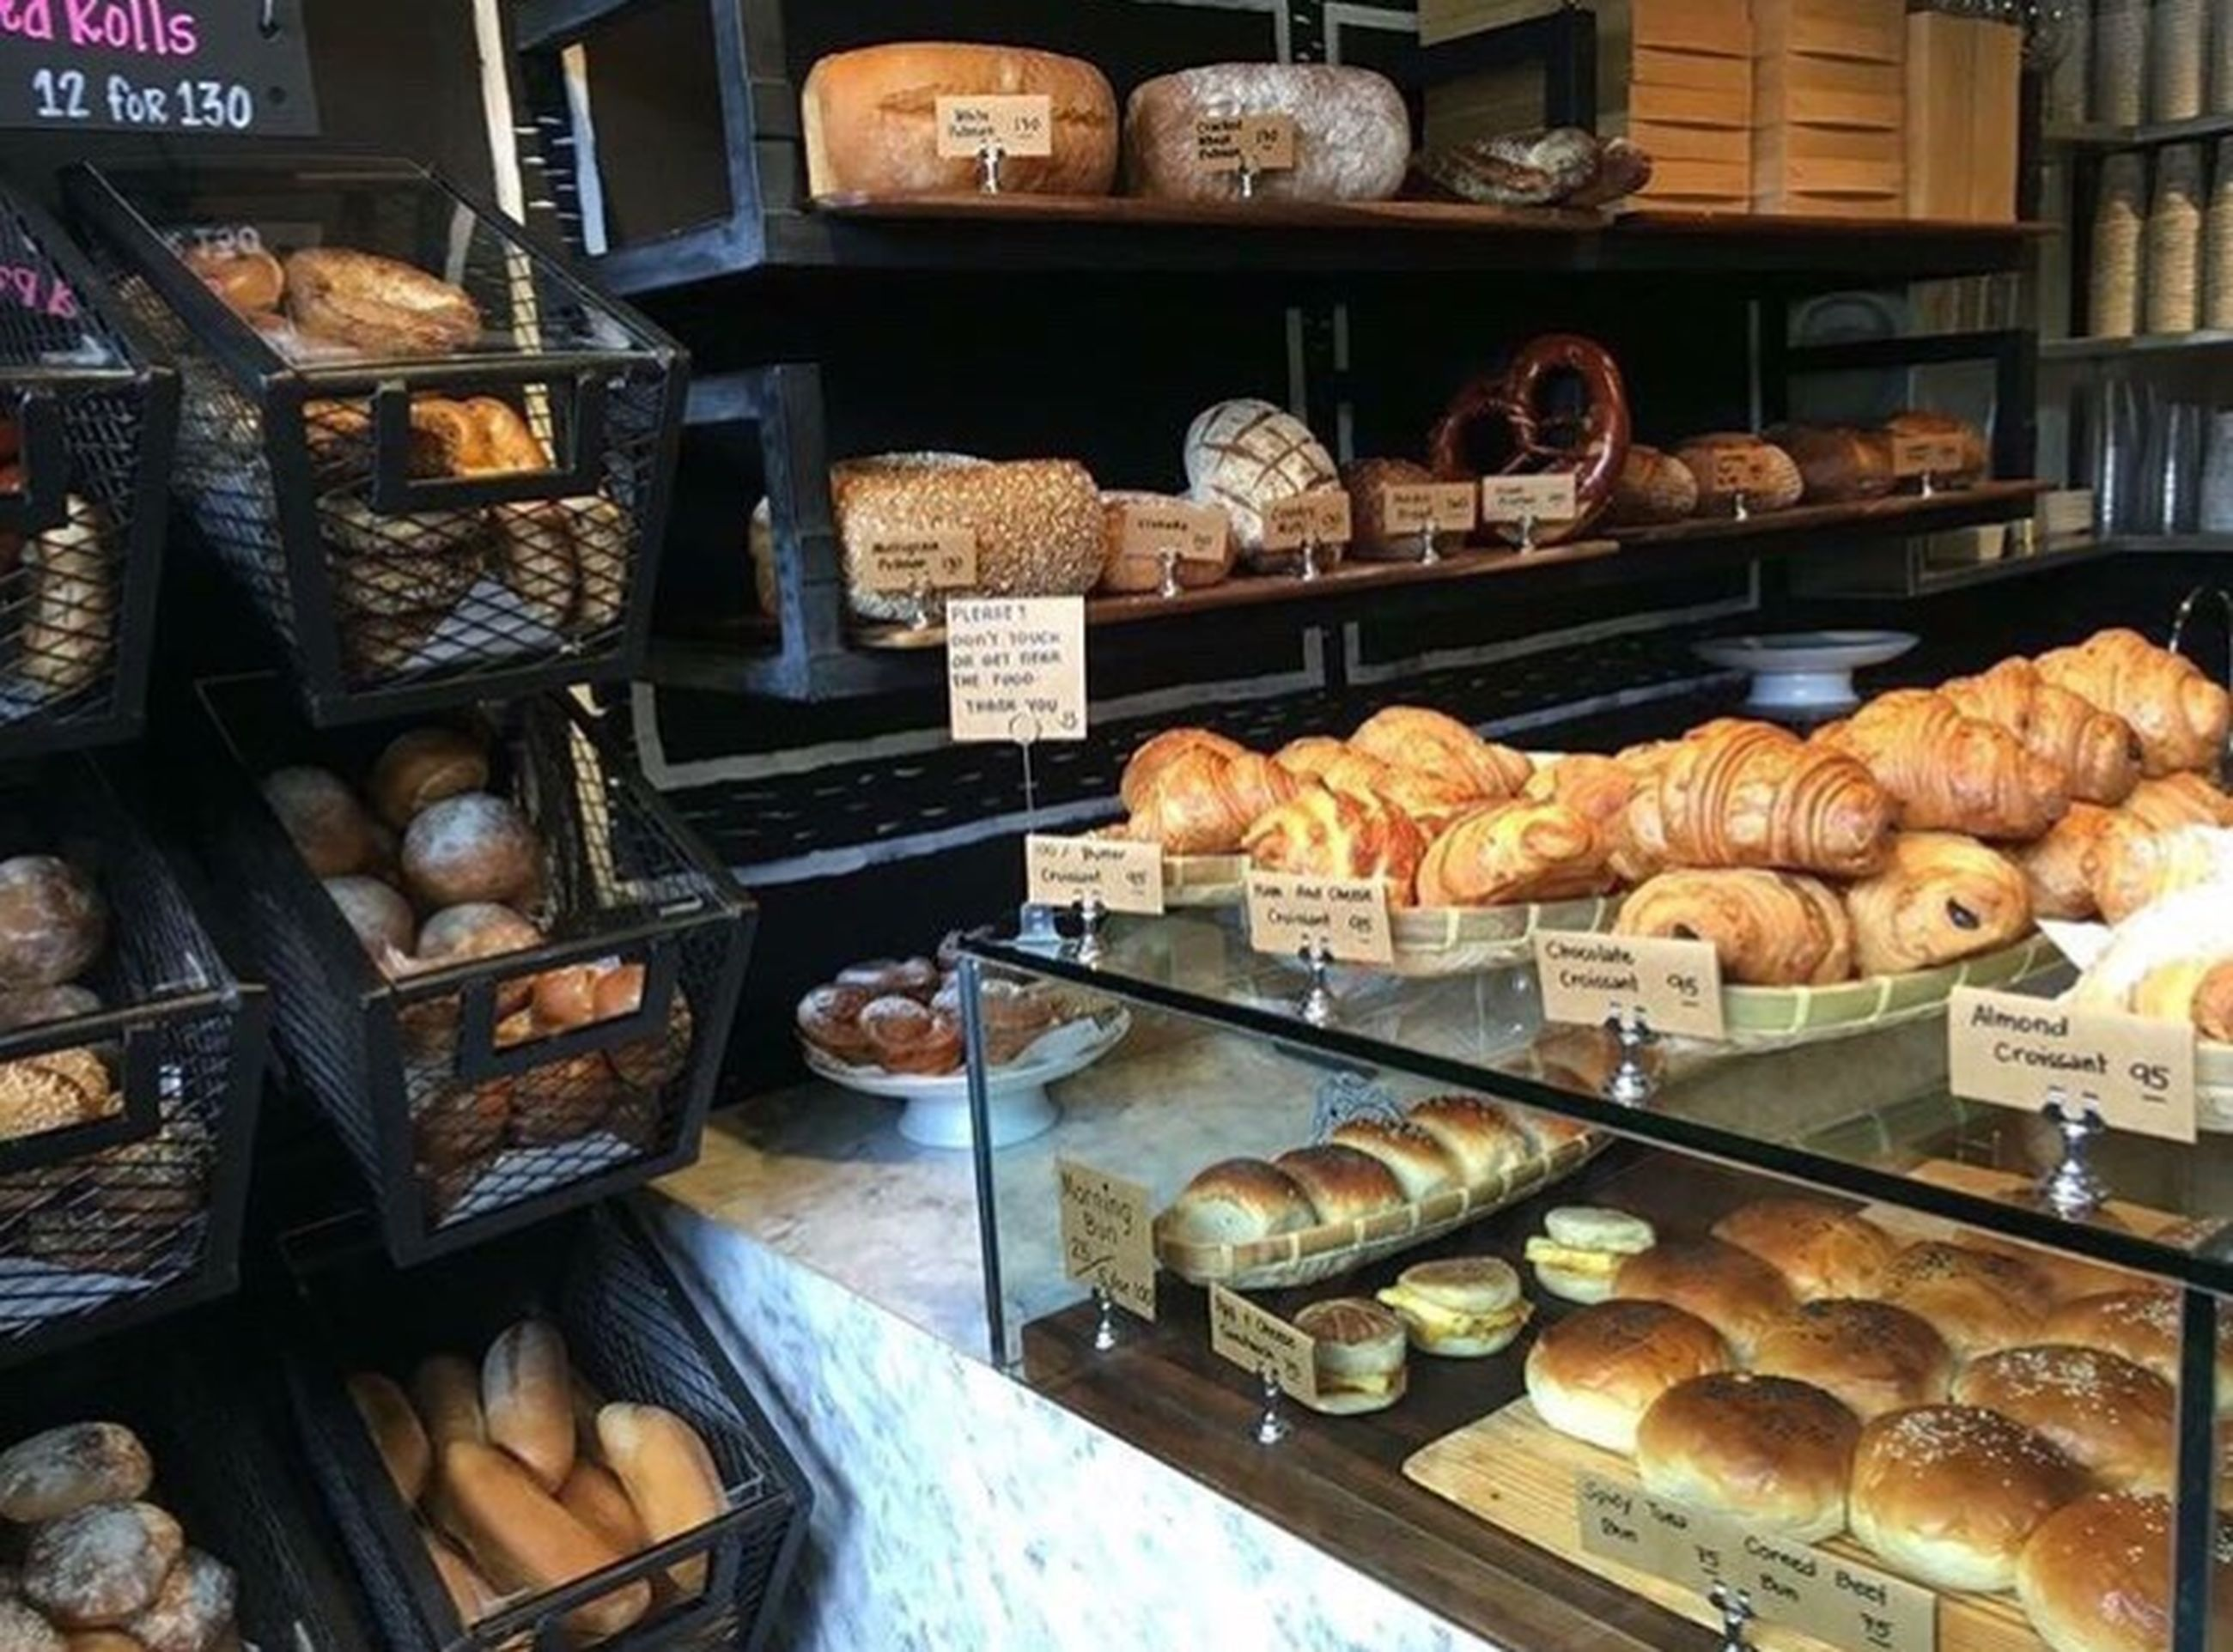 bakery, bread, shelf, freshness, variation, no people, loaf of bread, french food, food, baguette, day